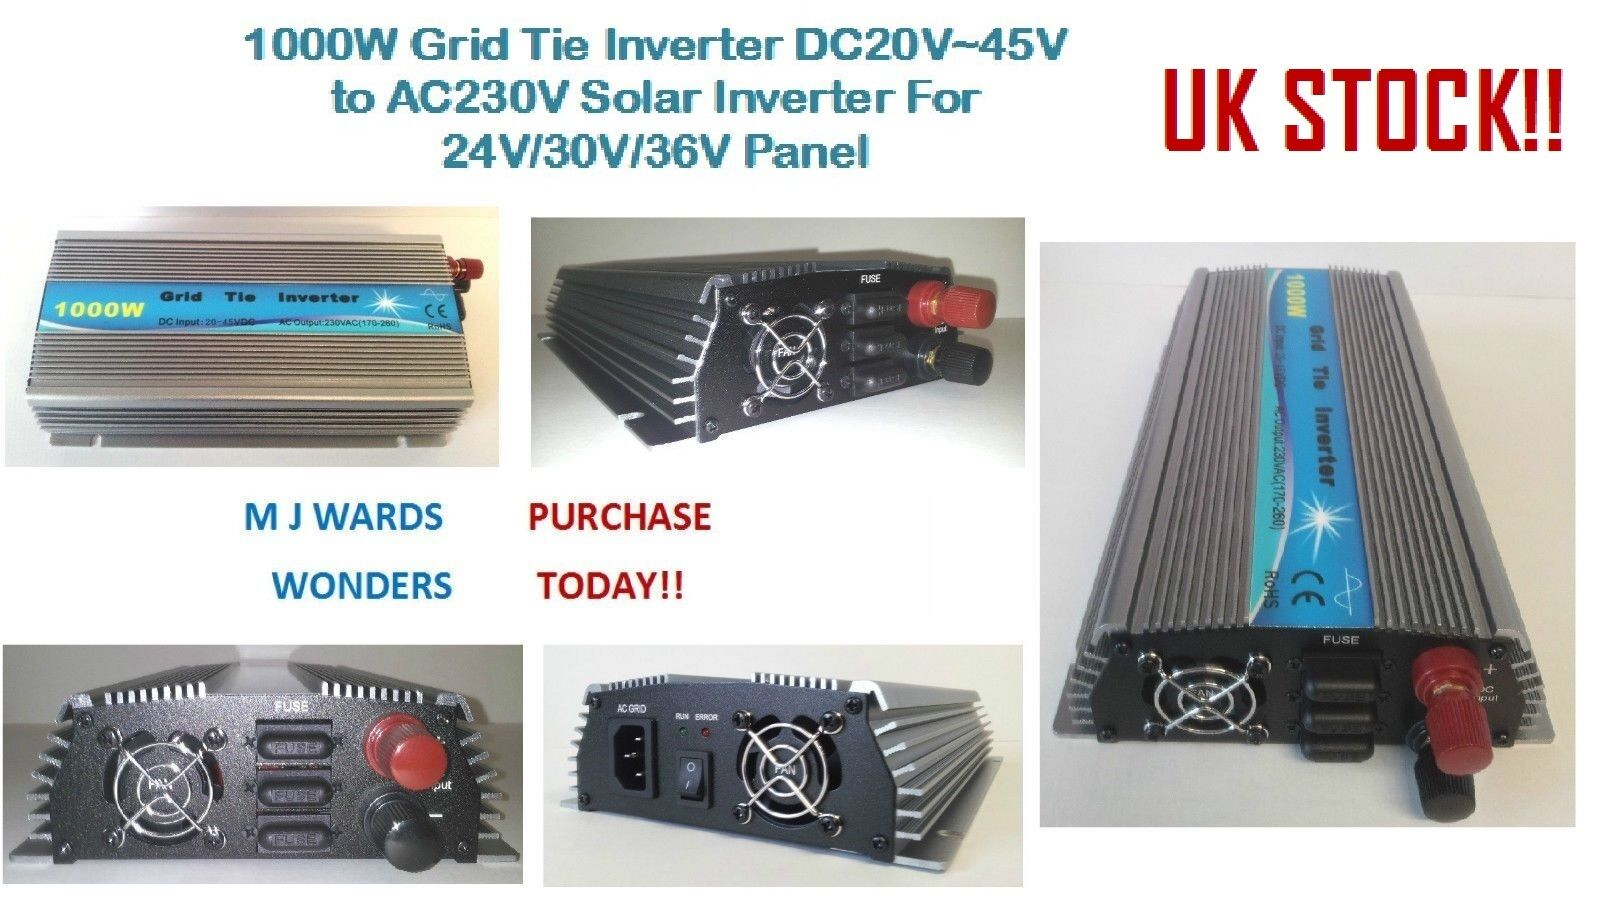 1000W Grid Tie Ingreener DC20V45V to AC220V Solar Ingreener For 24V 30V 36V Panel